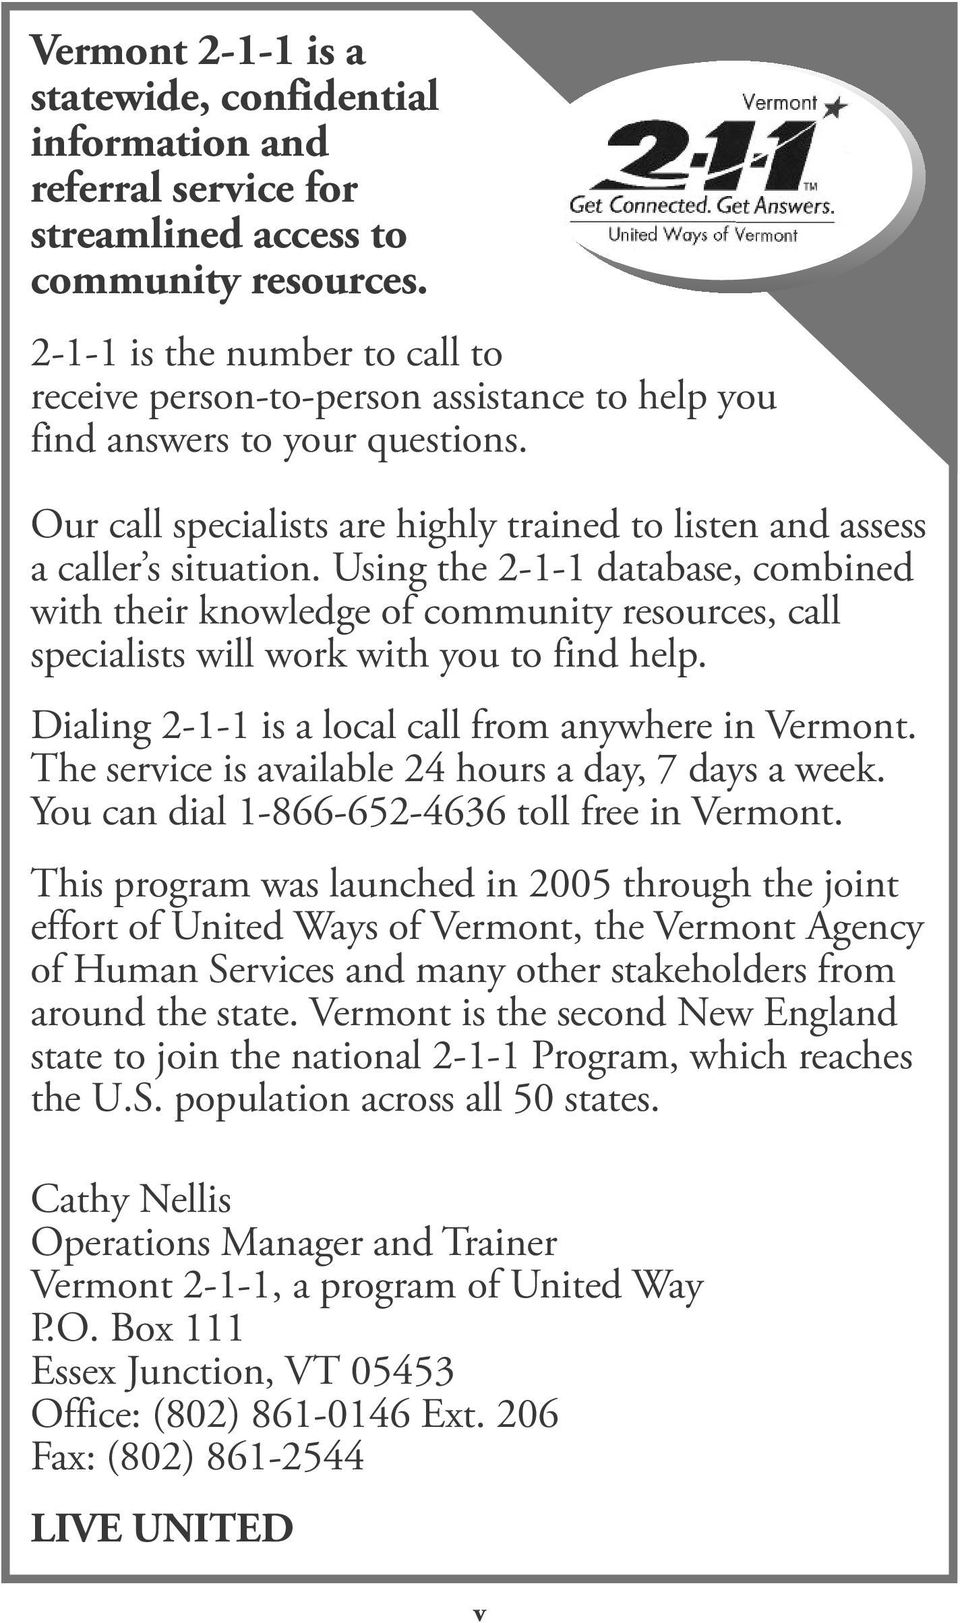 Using the 2-1-1 database, combined with their knowledge of community resources, call specialists will work with you to find help. Dialing 2-1-1 is a local call from anywhere in Vermont.